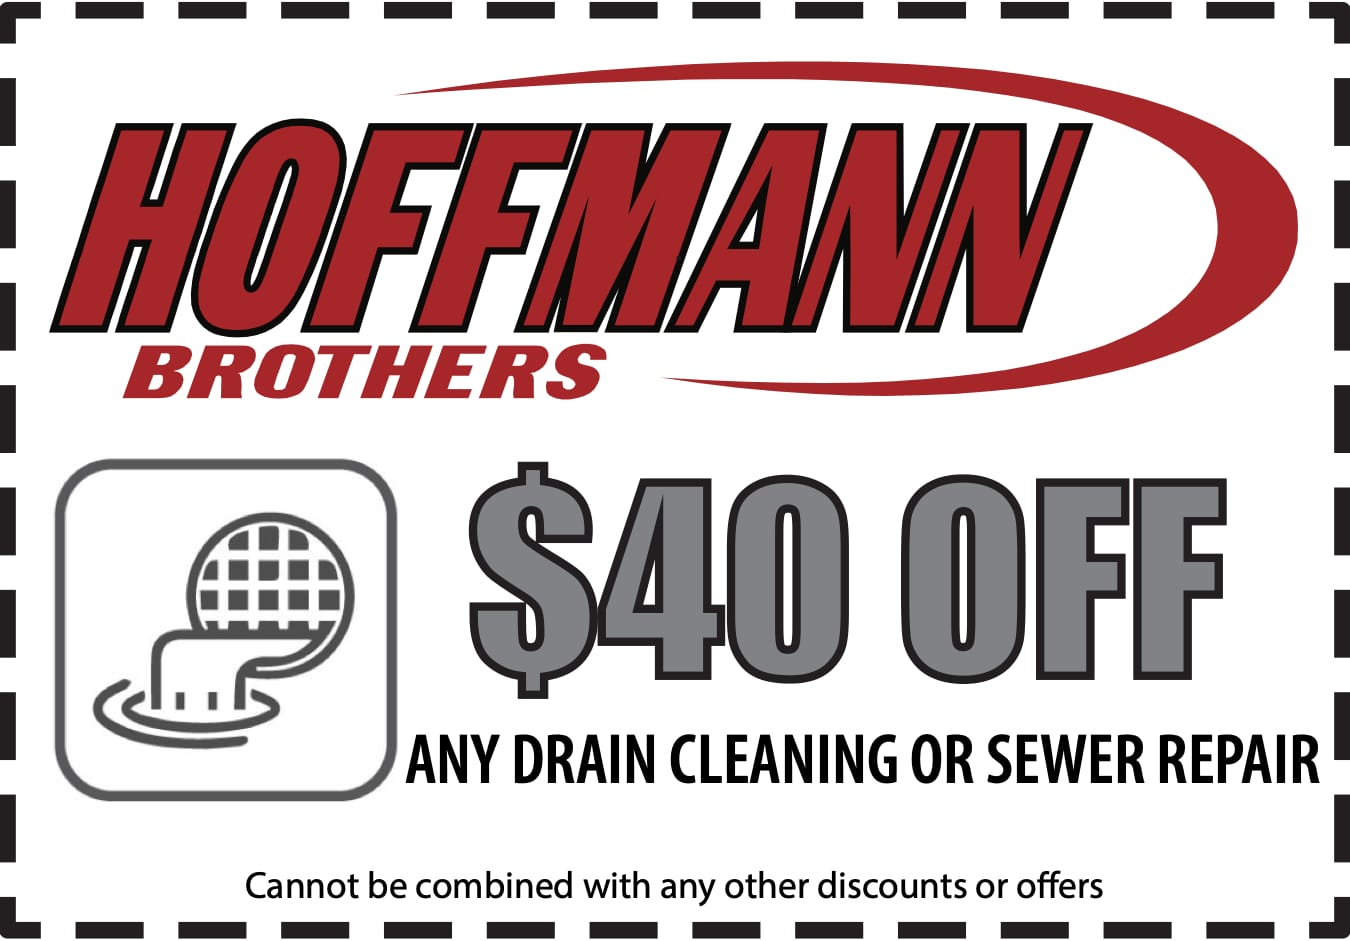 $40 off any drain cleaning or sewer repair coupon